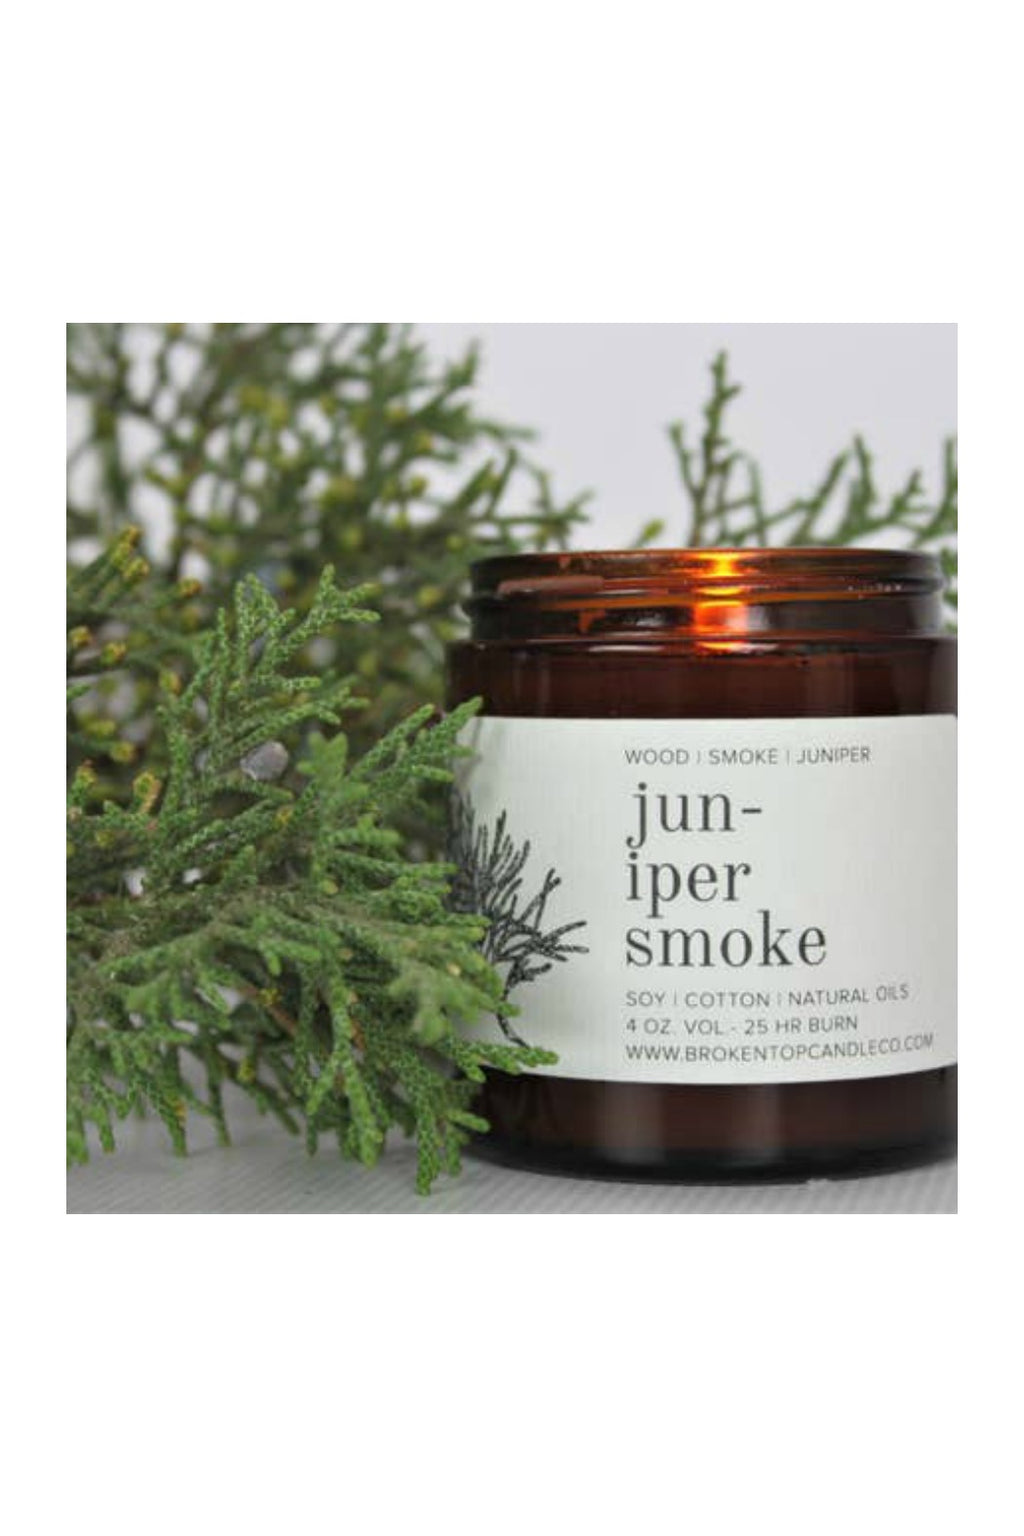 Broken Top Candle Co. 4 oz. Soy Candle - Juniper Smoke